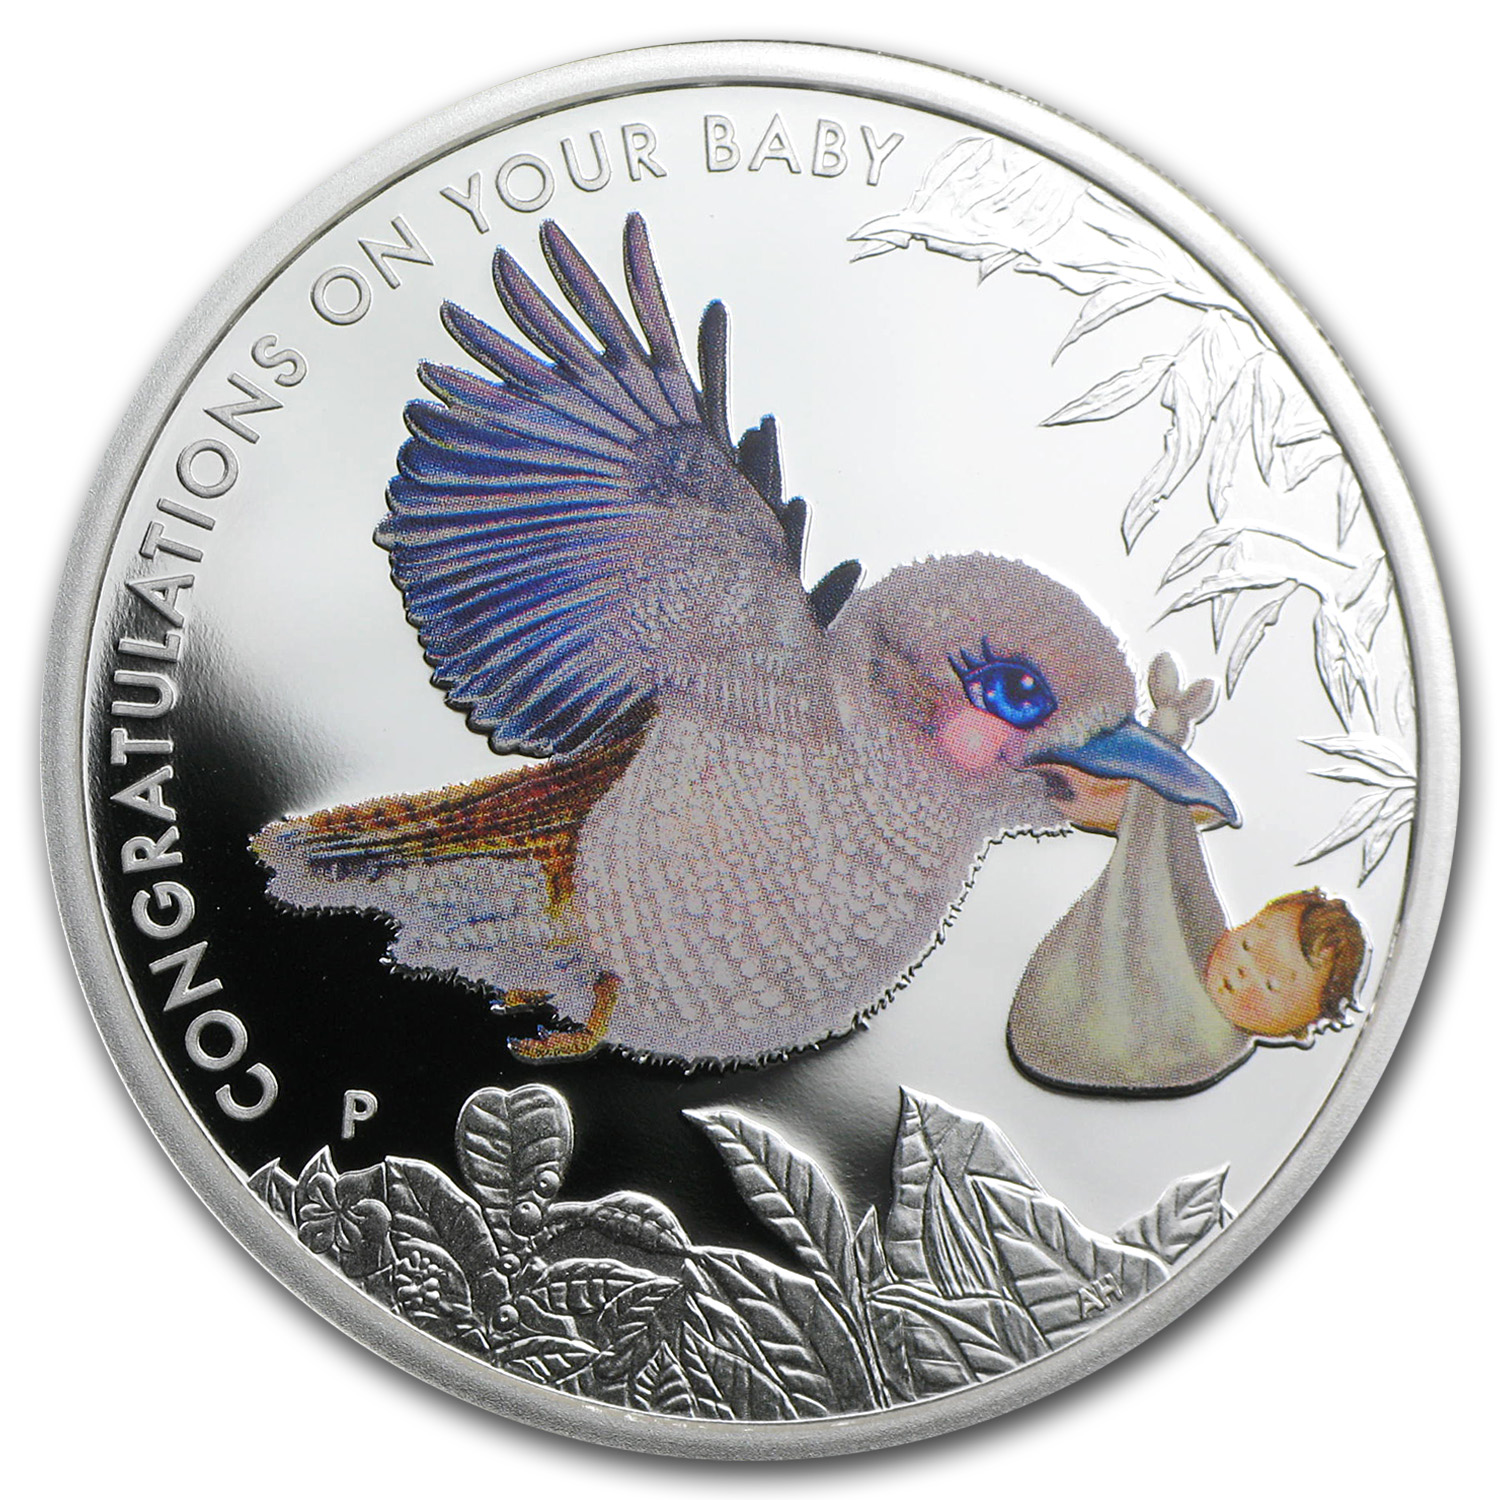 2014 1/2 oz Silver Newborn Baby Kookaburra Proof Coin